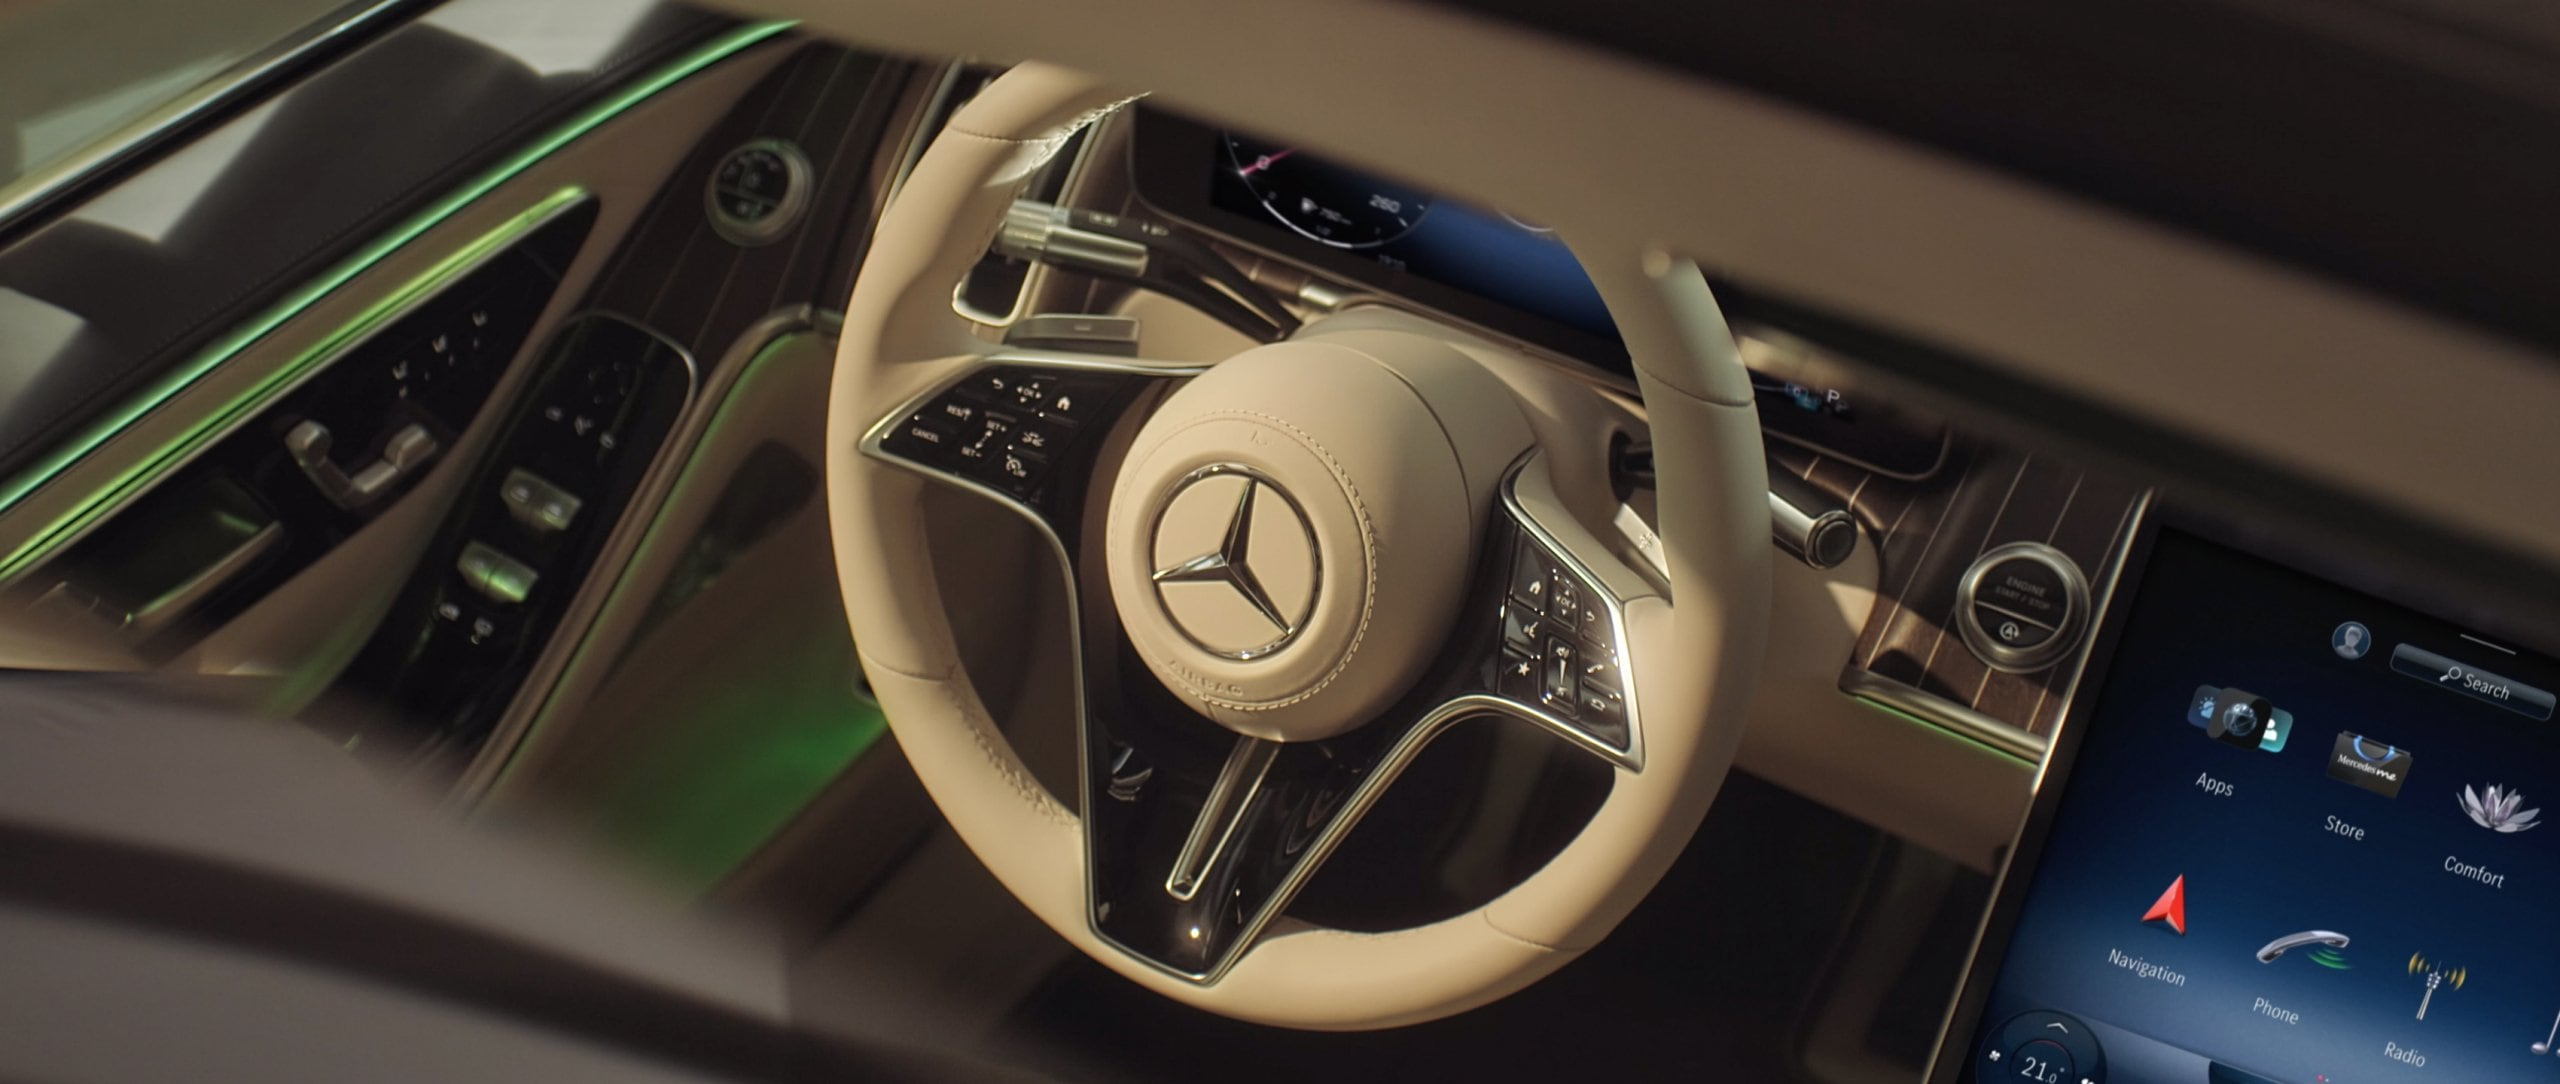 Steering wheel in the 2020 Mercedes-Benz S-Class (BR 223)